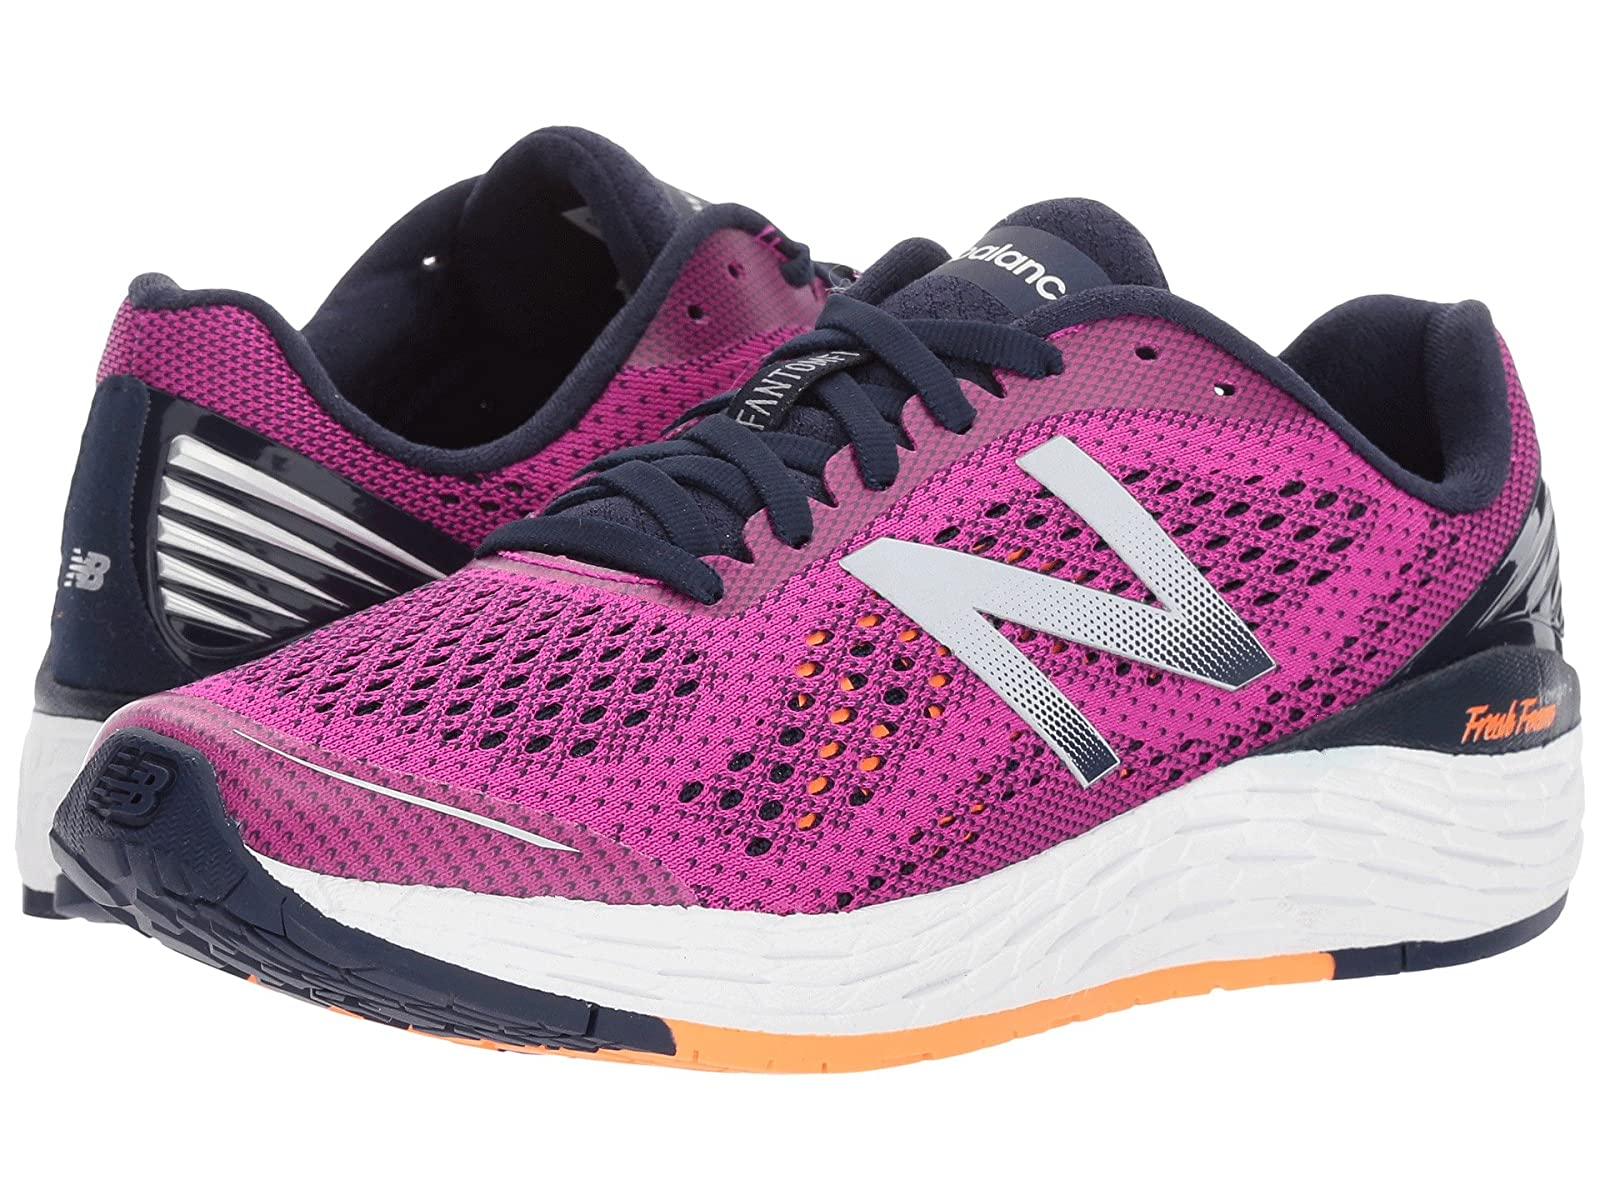 New Balance Fresh Foam Vongo v2Cheap and distinctive eye-catching shoes